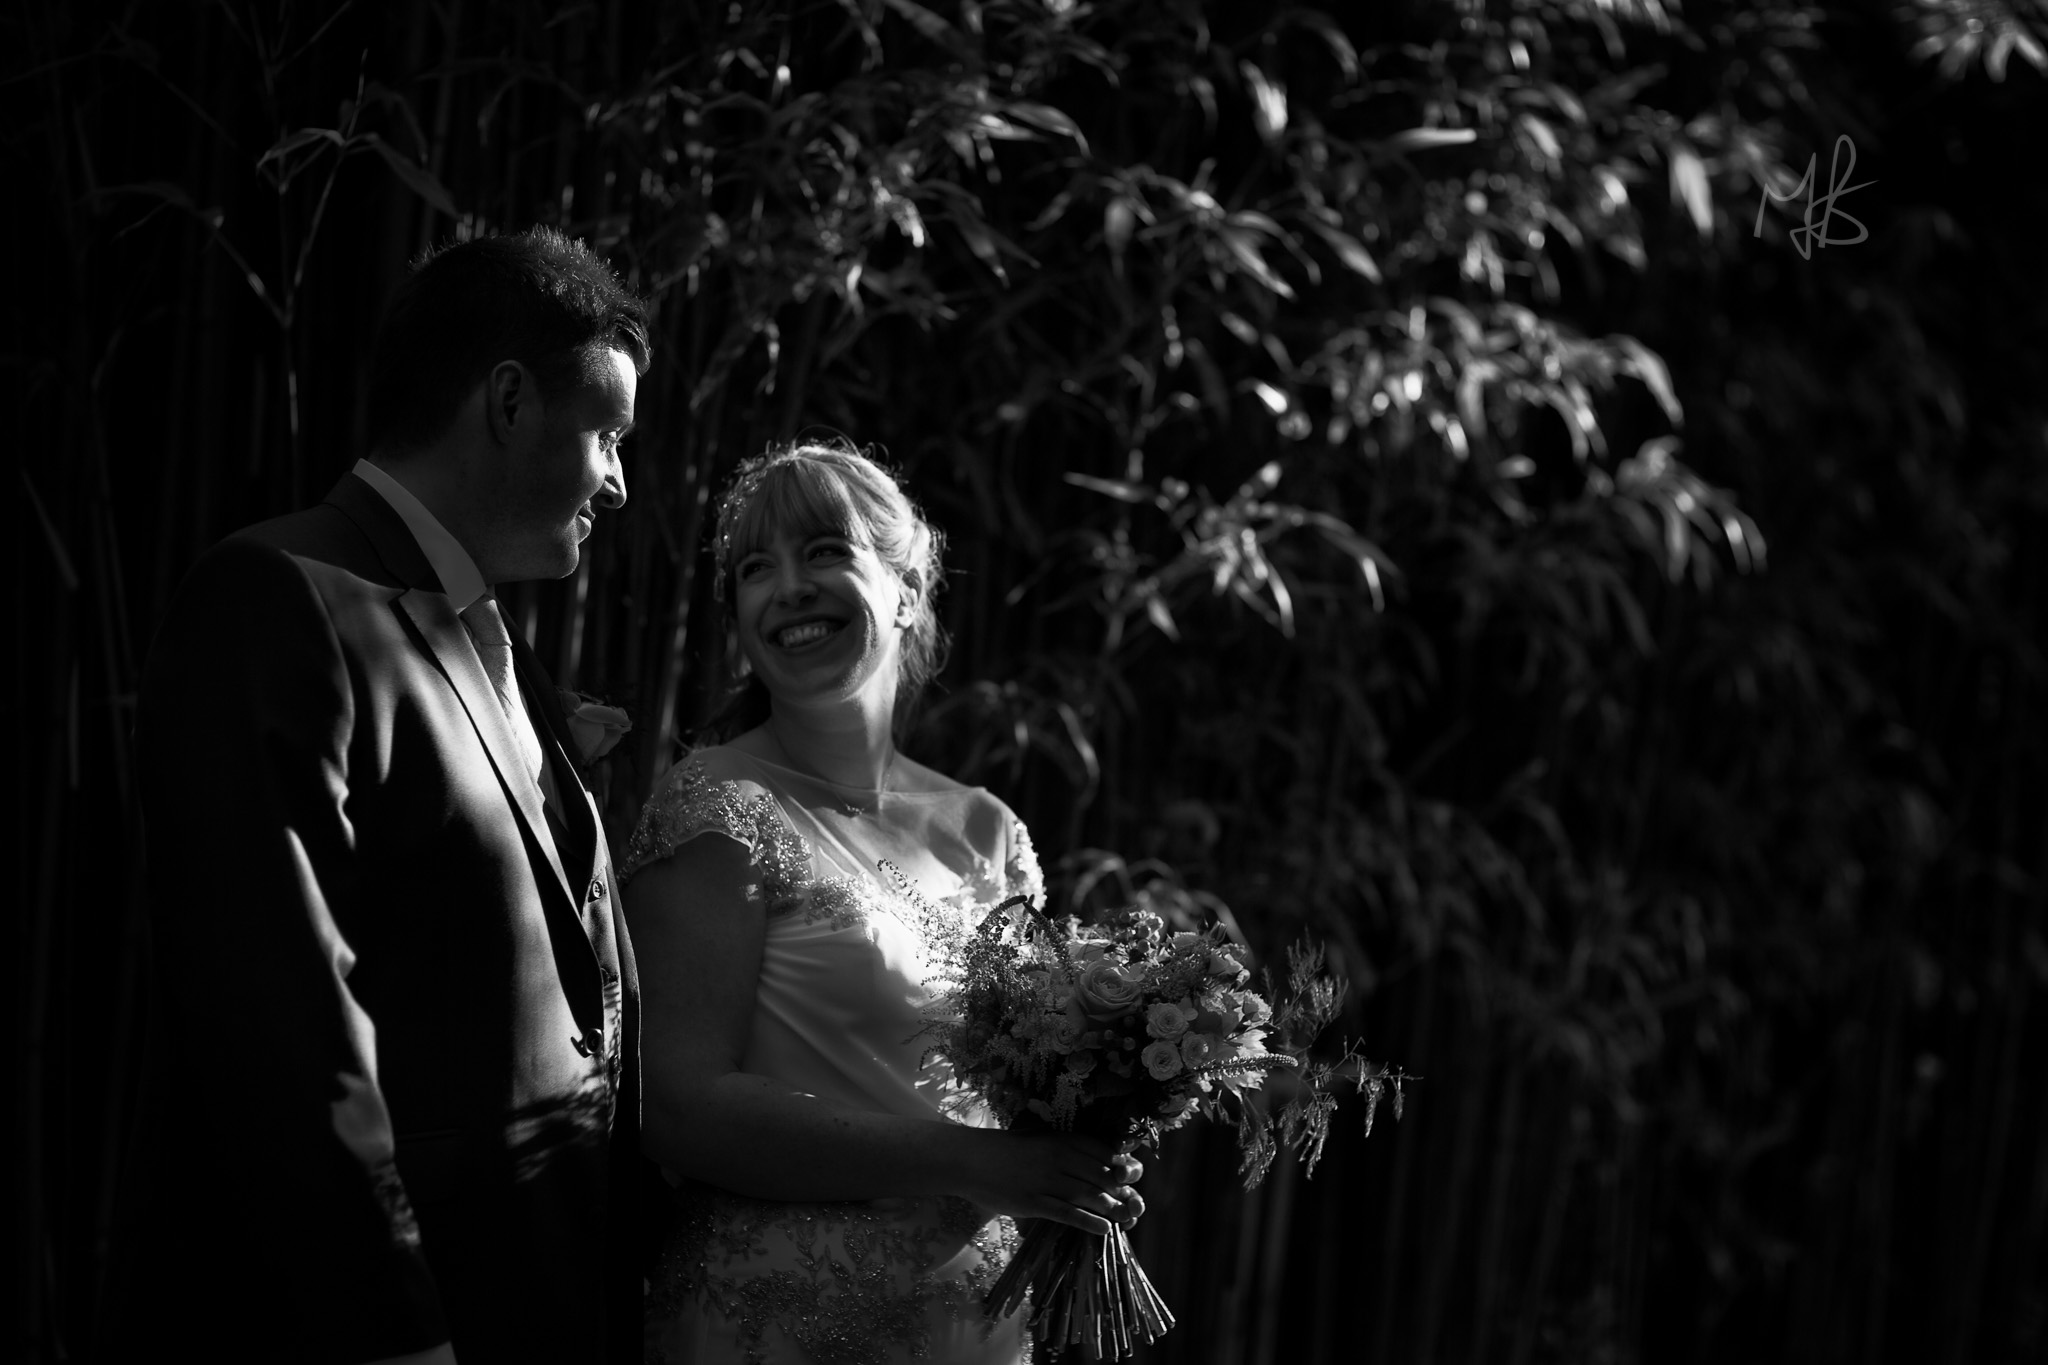 Northern_Ireland_Wedding-Photographer-Mark-Barnes-Hallsannery_House_Wedding_Photography-1.jpg